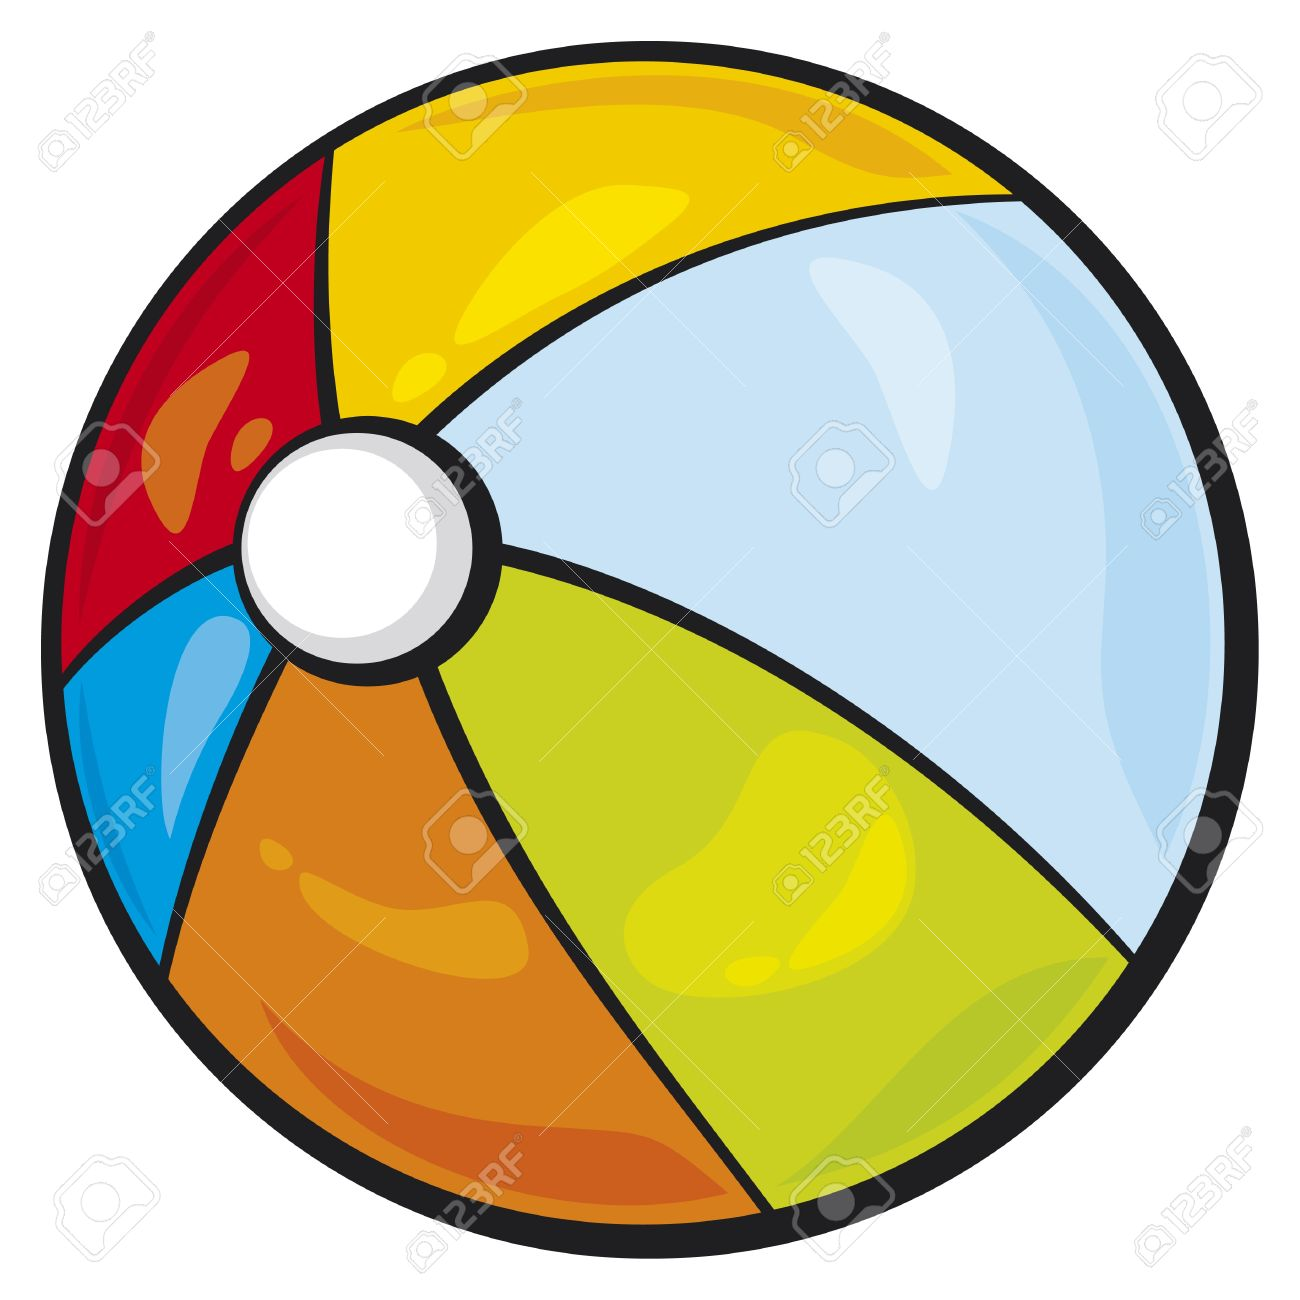 Beach ball clip art bouncy ball.